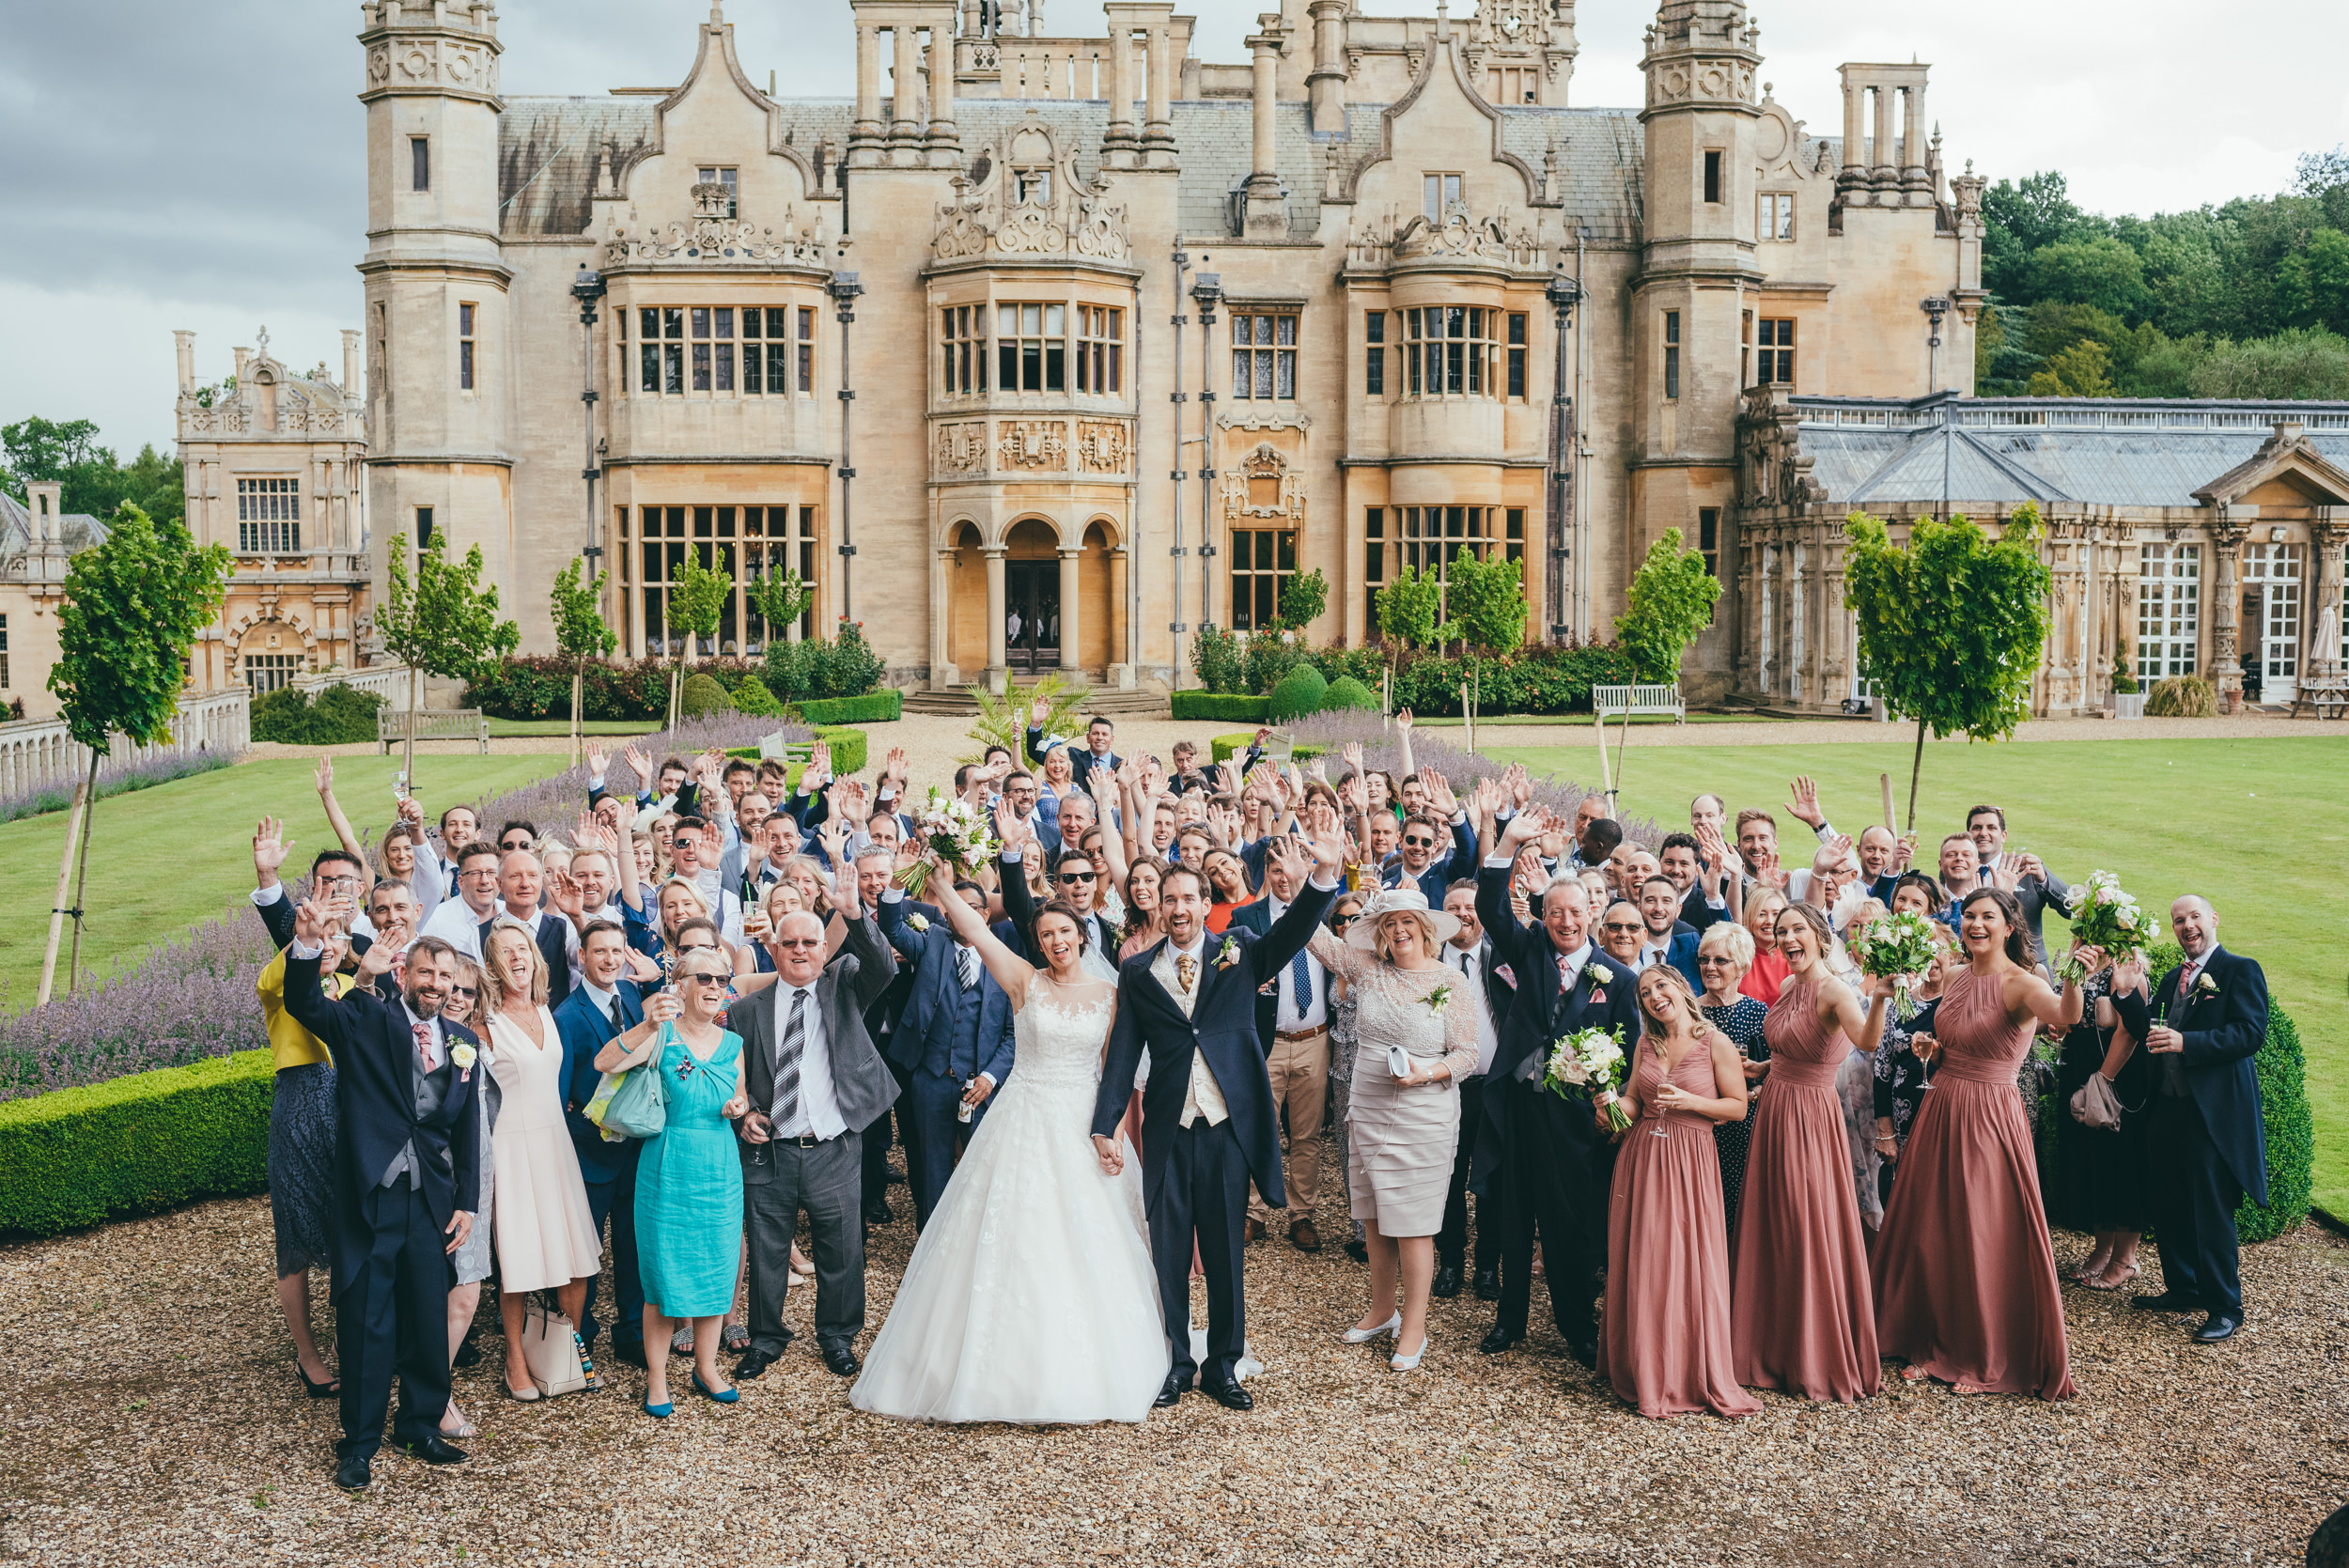 Big group photograph of the wedding guests at Harlaxton Manor